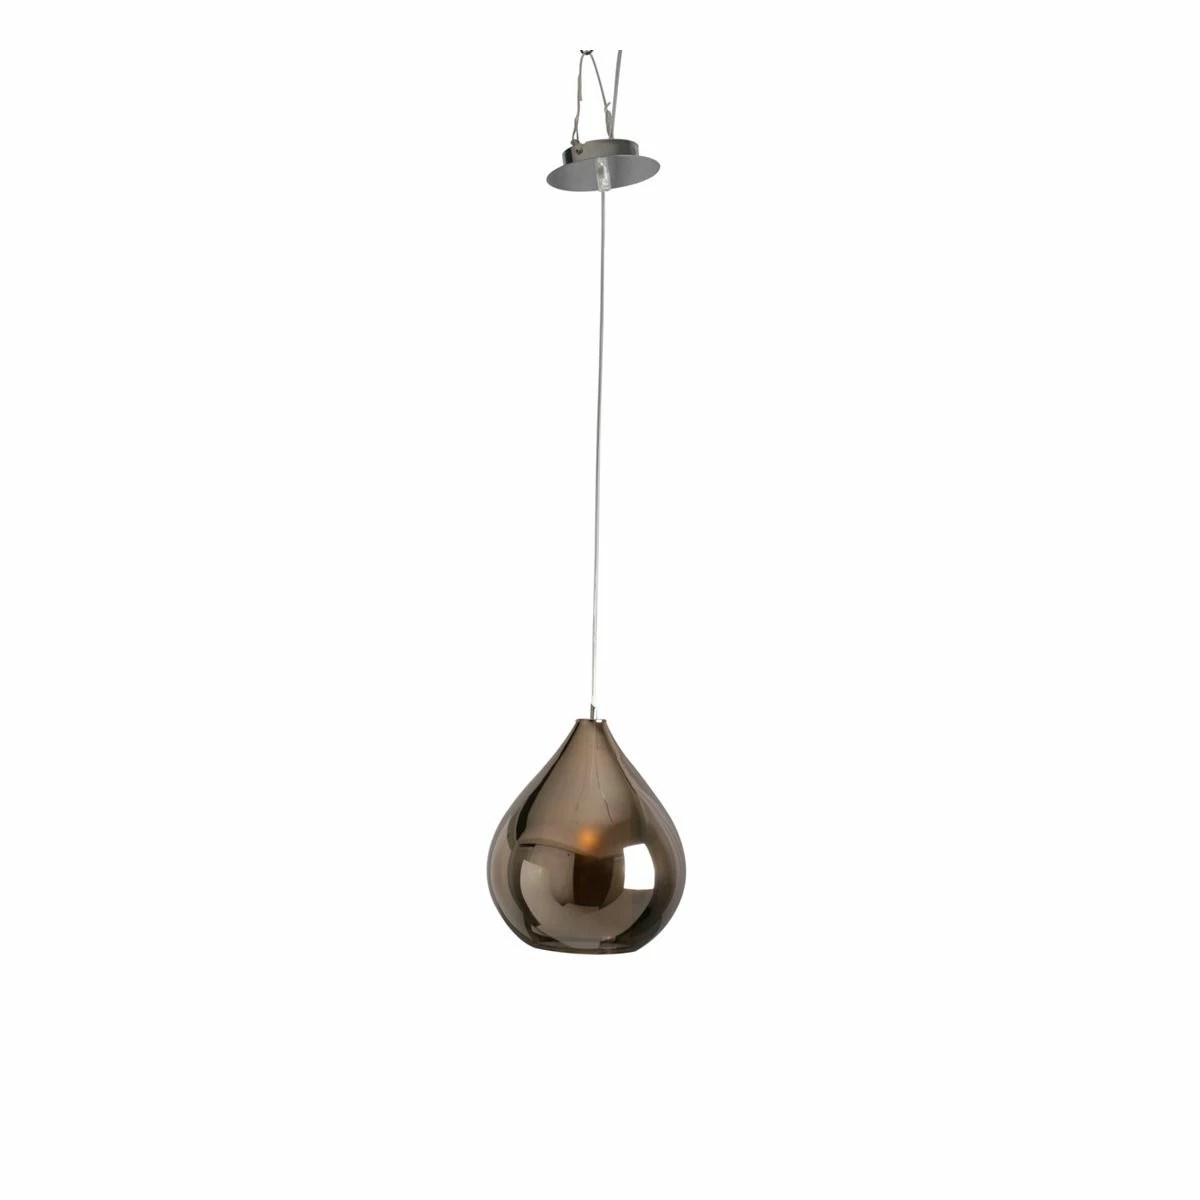 Suspension Contemporaine Suspension Contemporaine Circé 1 Concept Verre